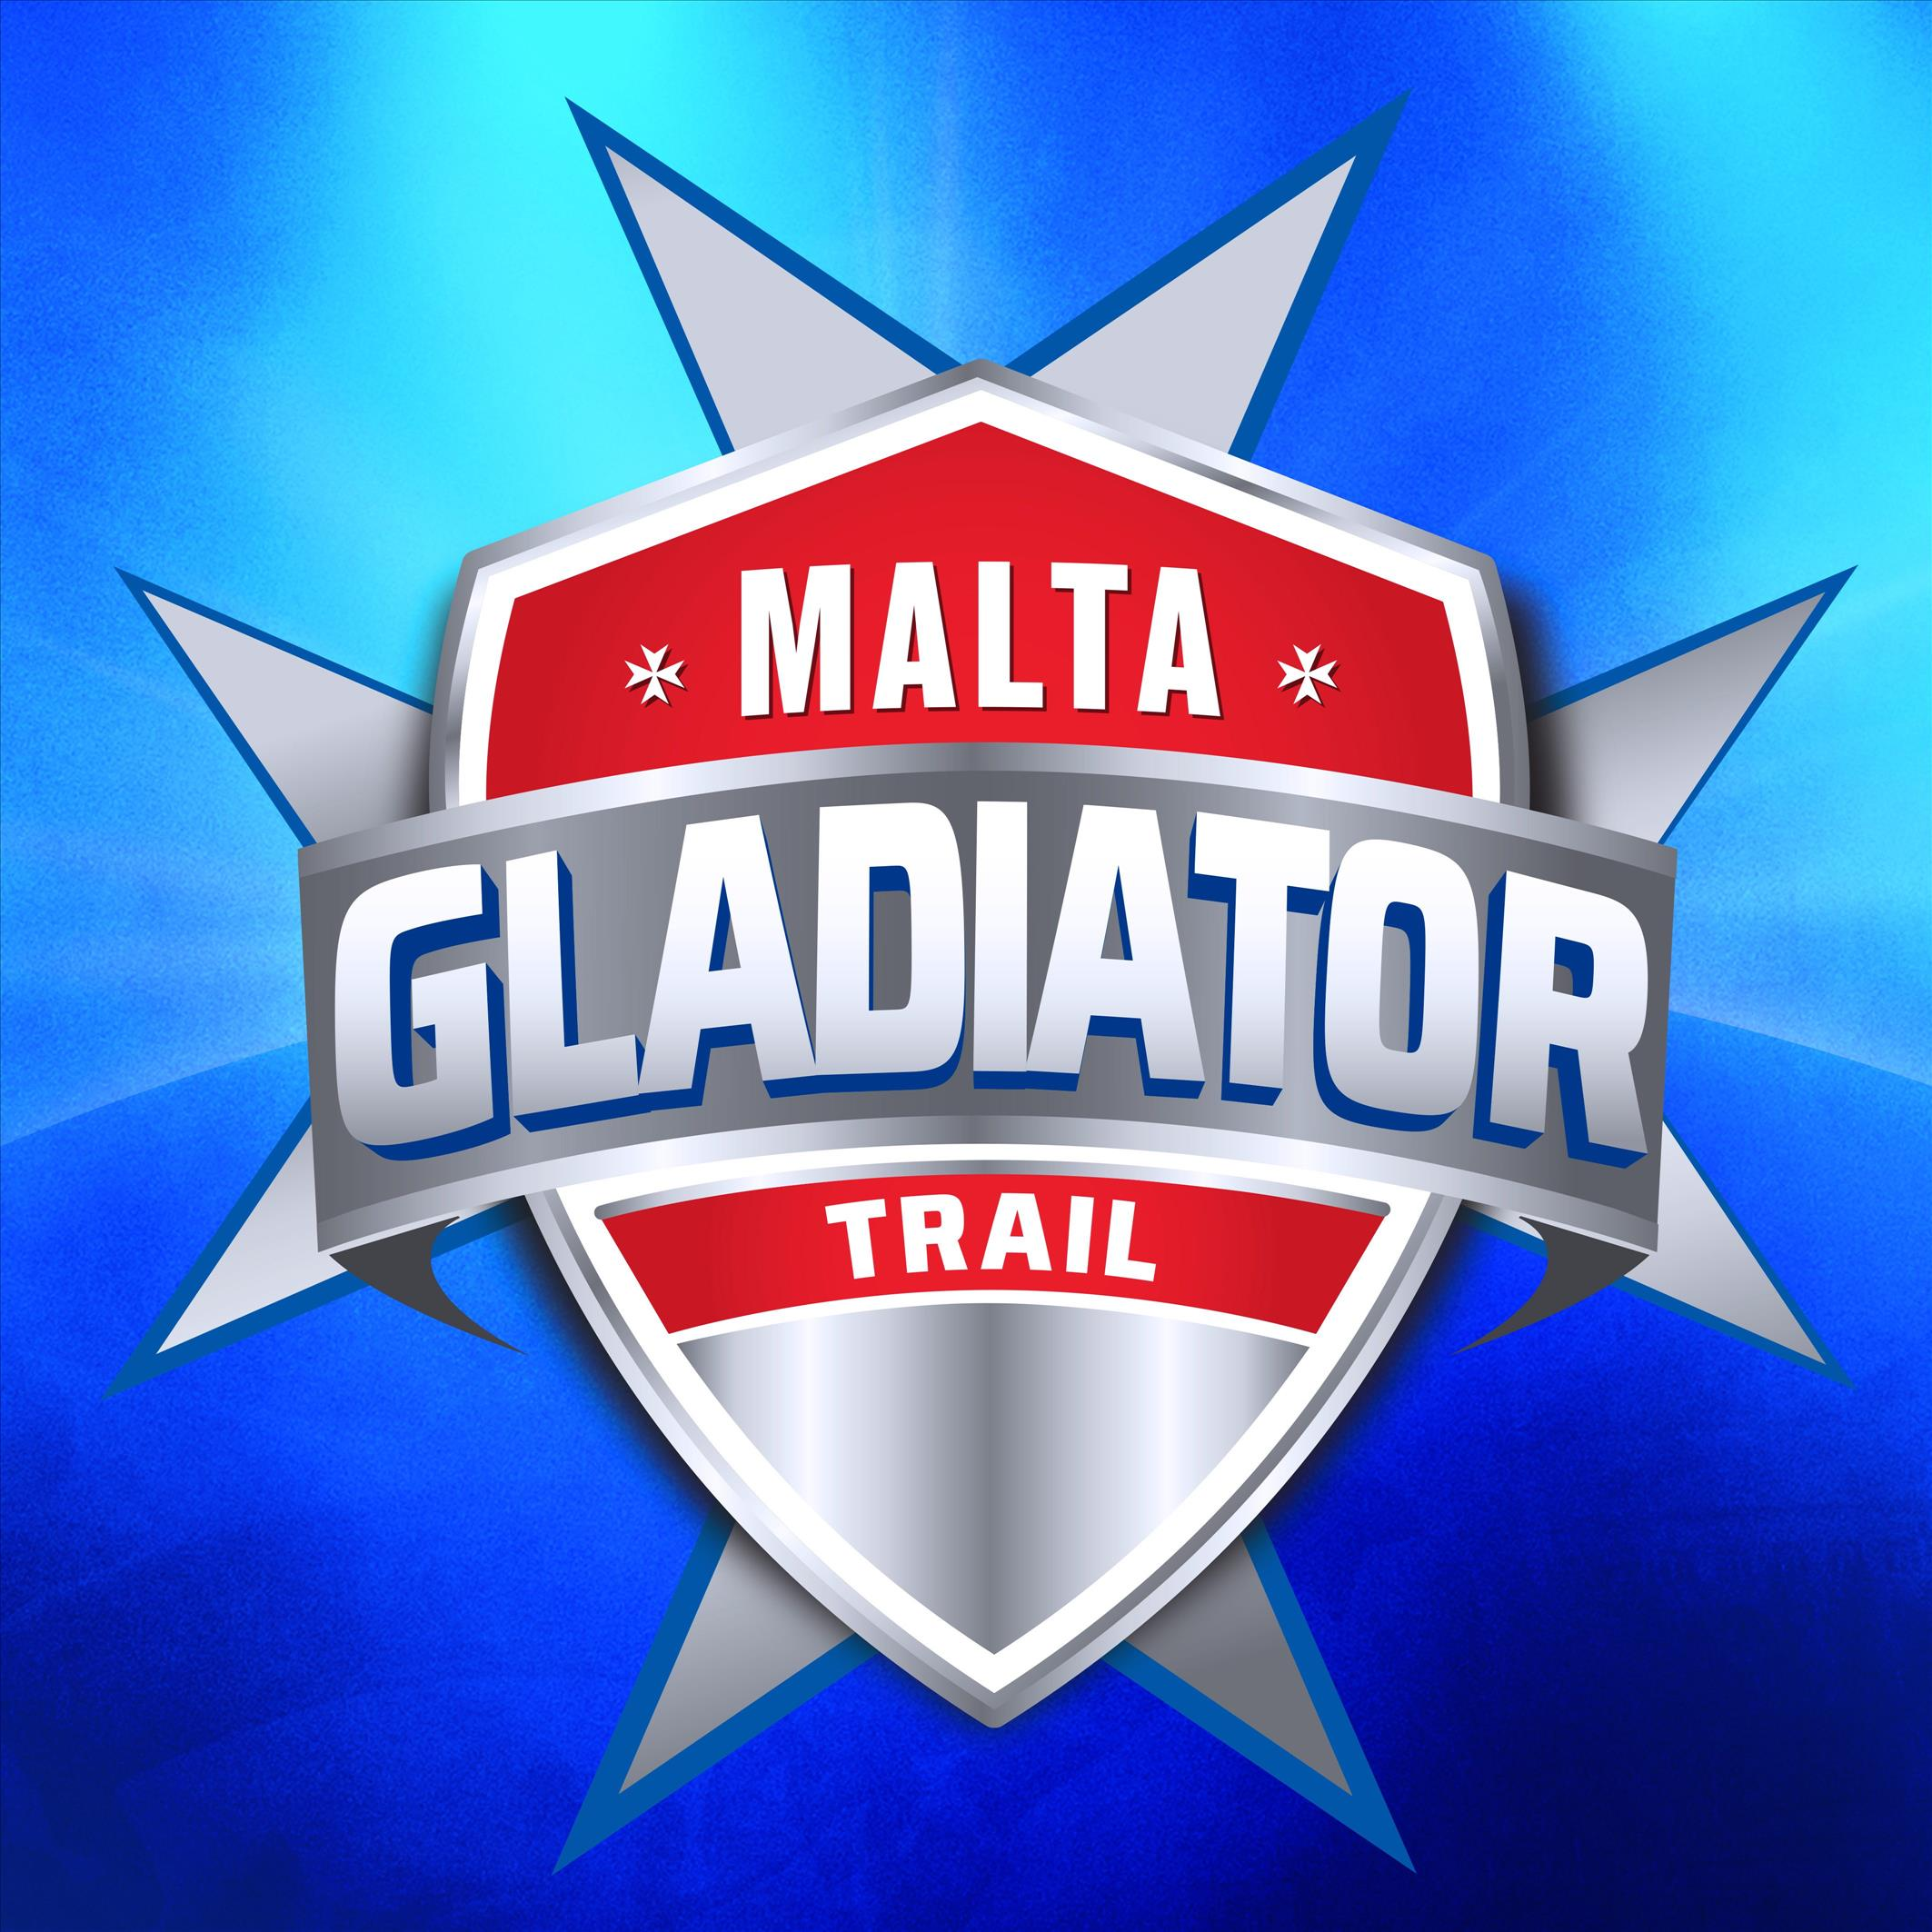 Gladiator Trail Malta 2020 - Training Time Trials flyer